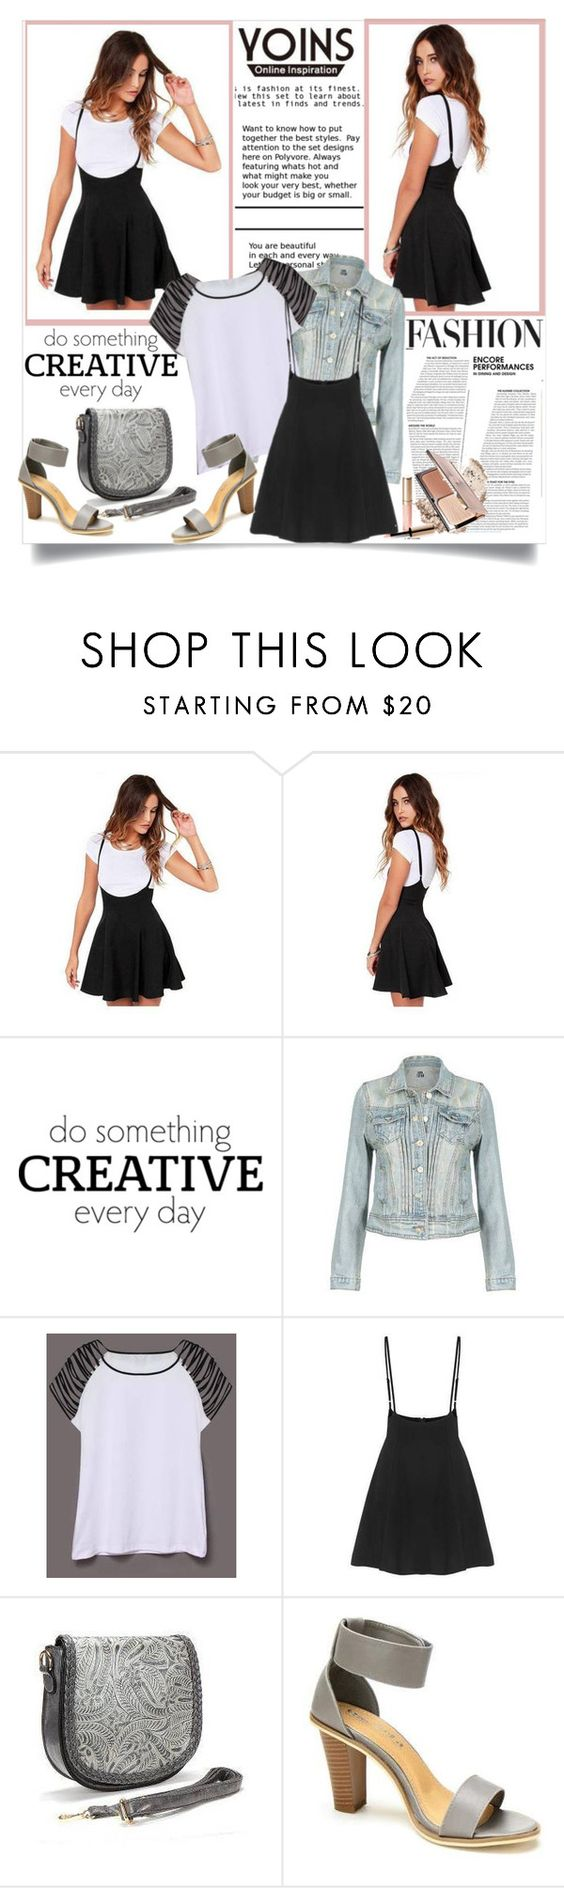 """""""Yoins #6"""" by ana-anaaaa ❤ liked on Polyvore featuring мода, By Terry, polyvoreeditorial и yoins"""